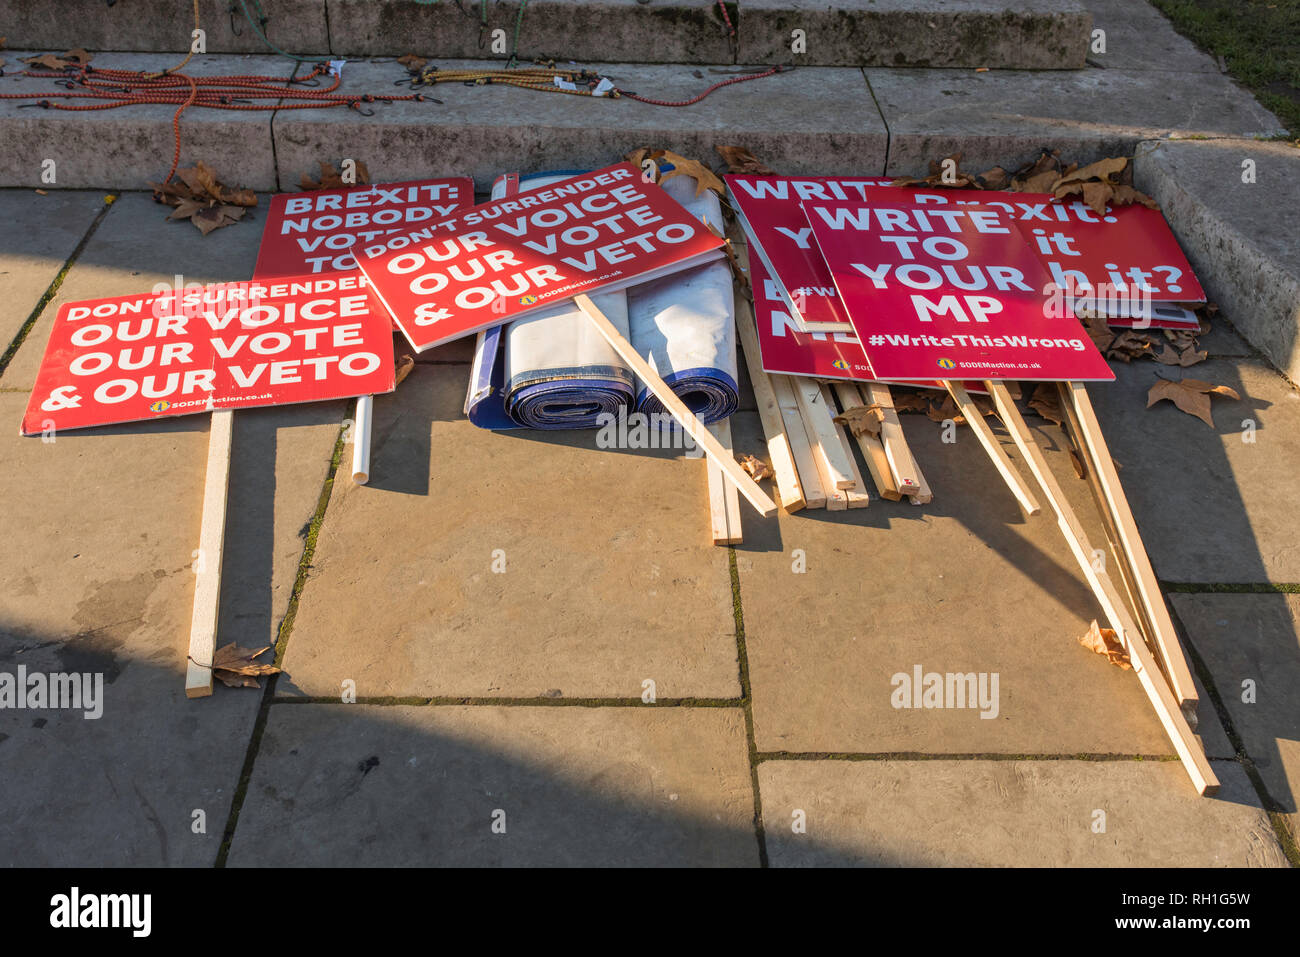 Anti-Brexit protesters in Abingdon Street, opposite the Houses of Parliament, London, UK. - Stock Image